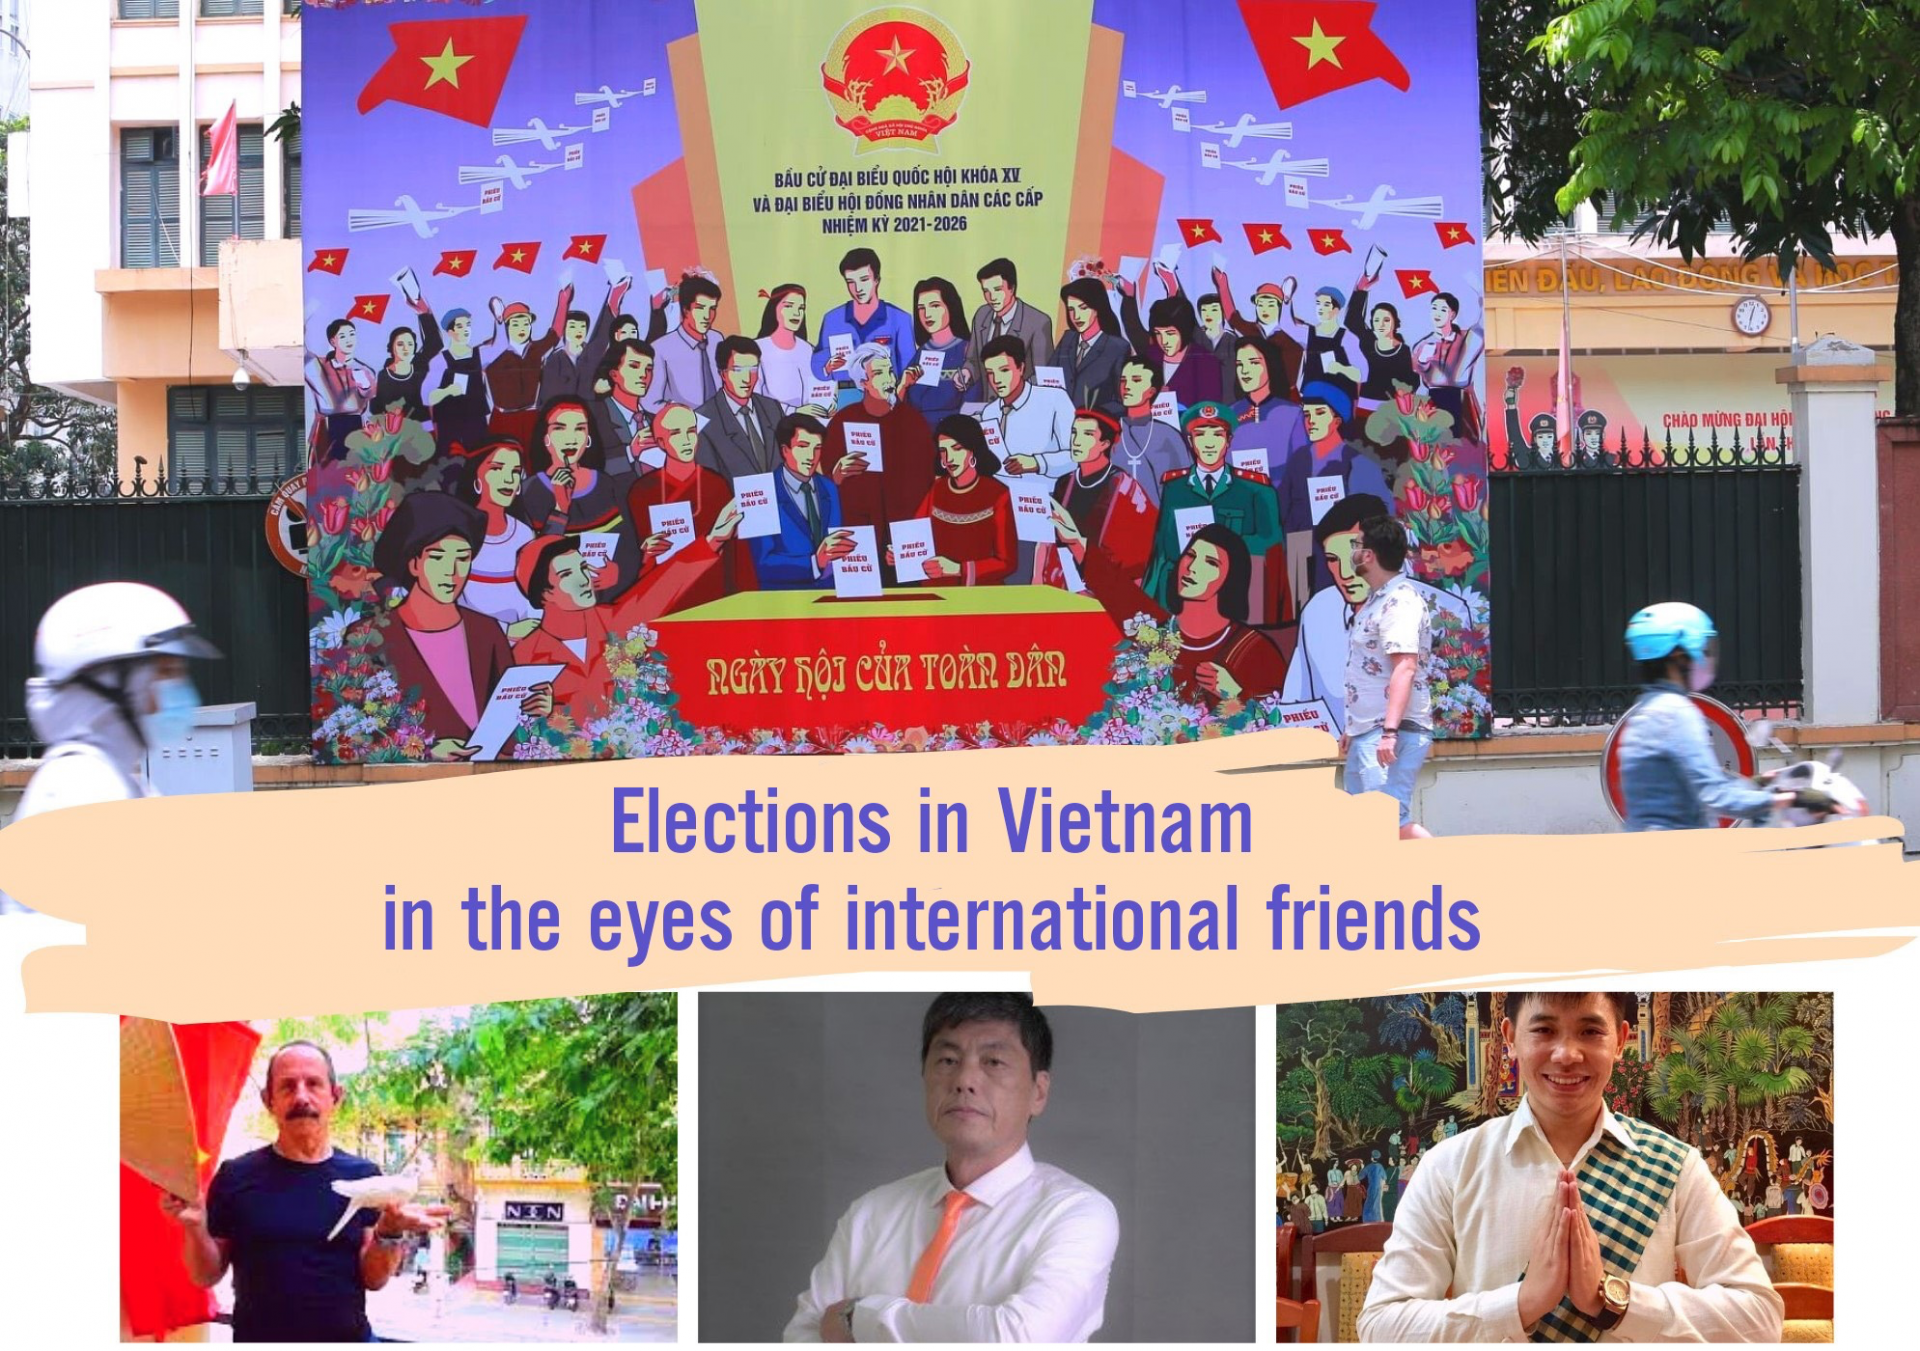 Elections in Vietnam in the eyes of international friends: Bright faith